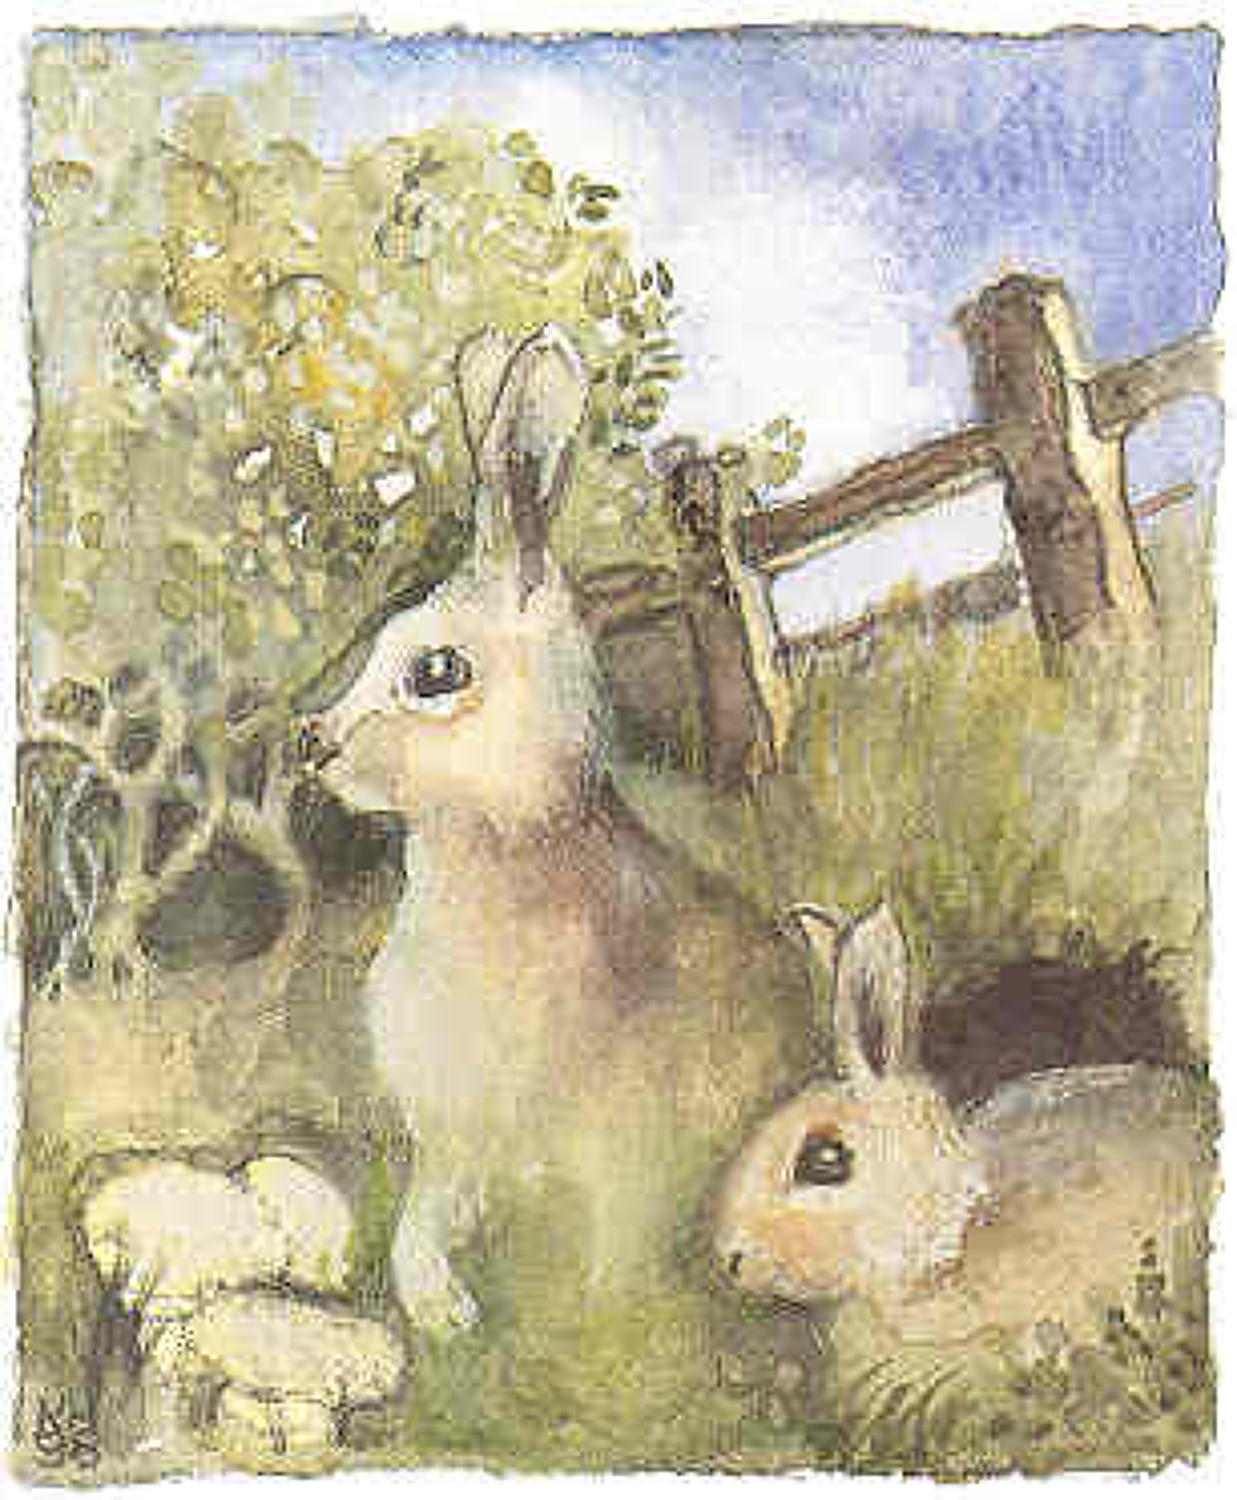 Two rabbits by their burrow